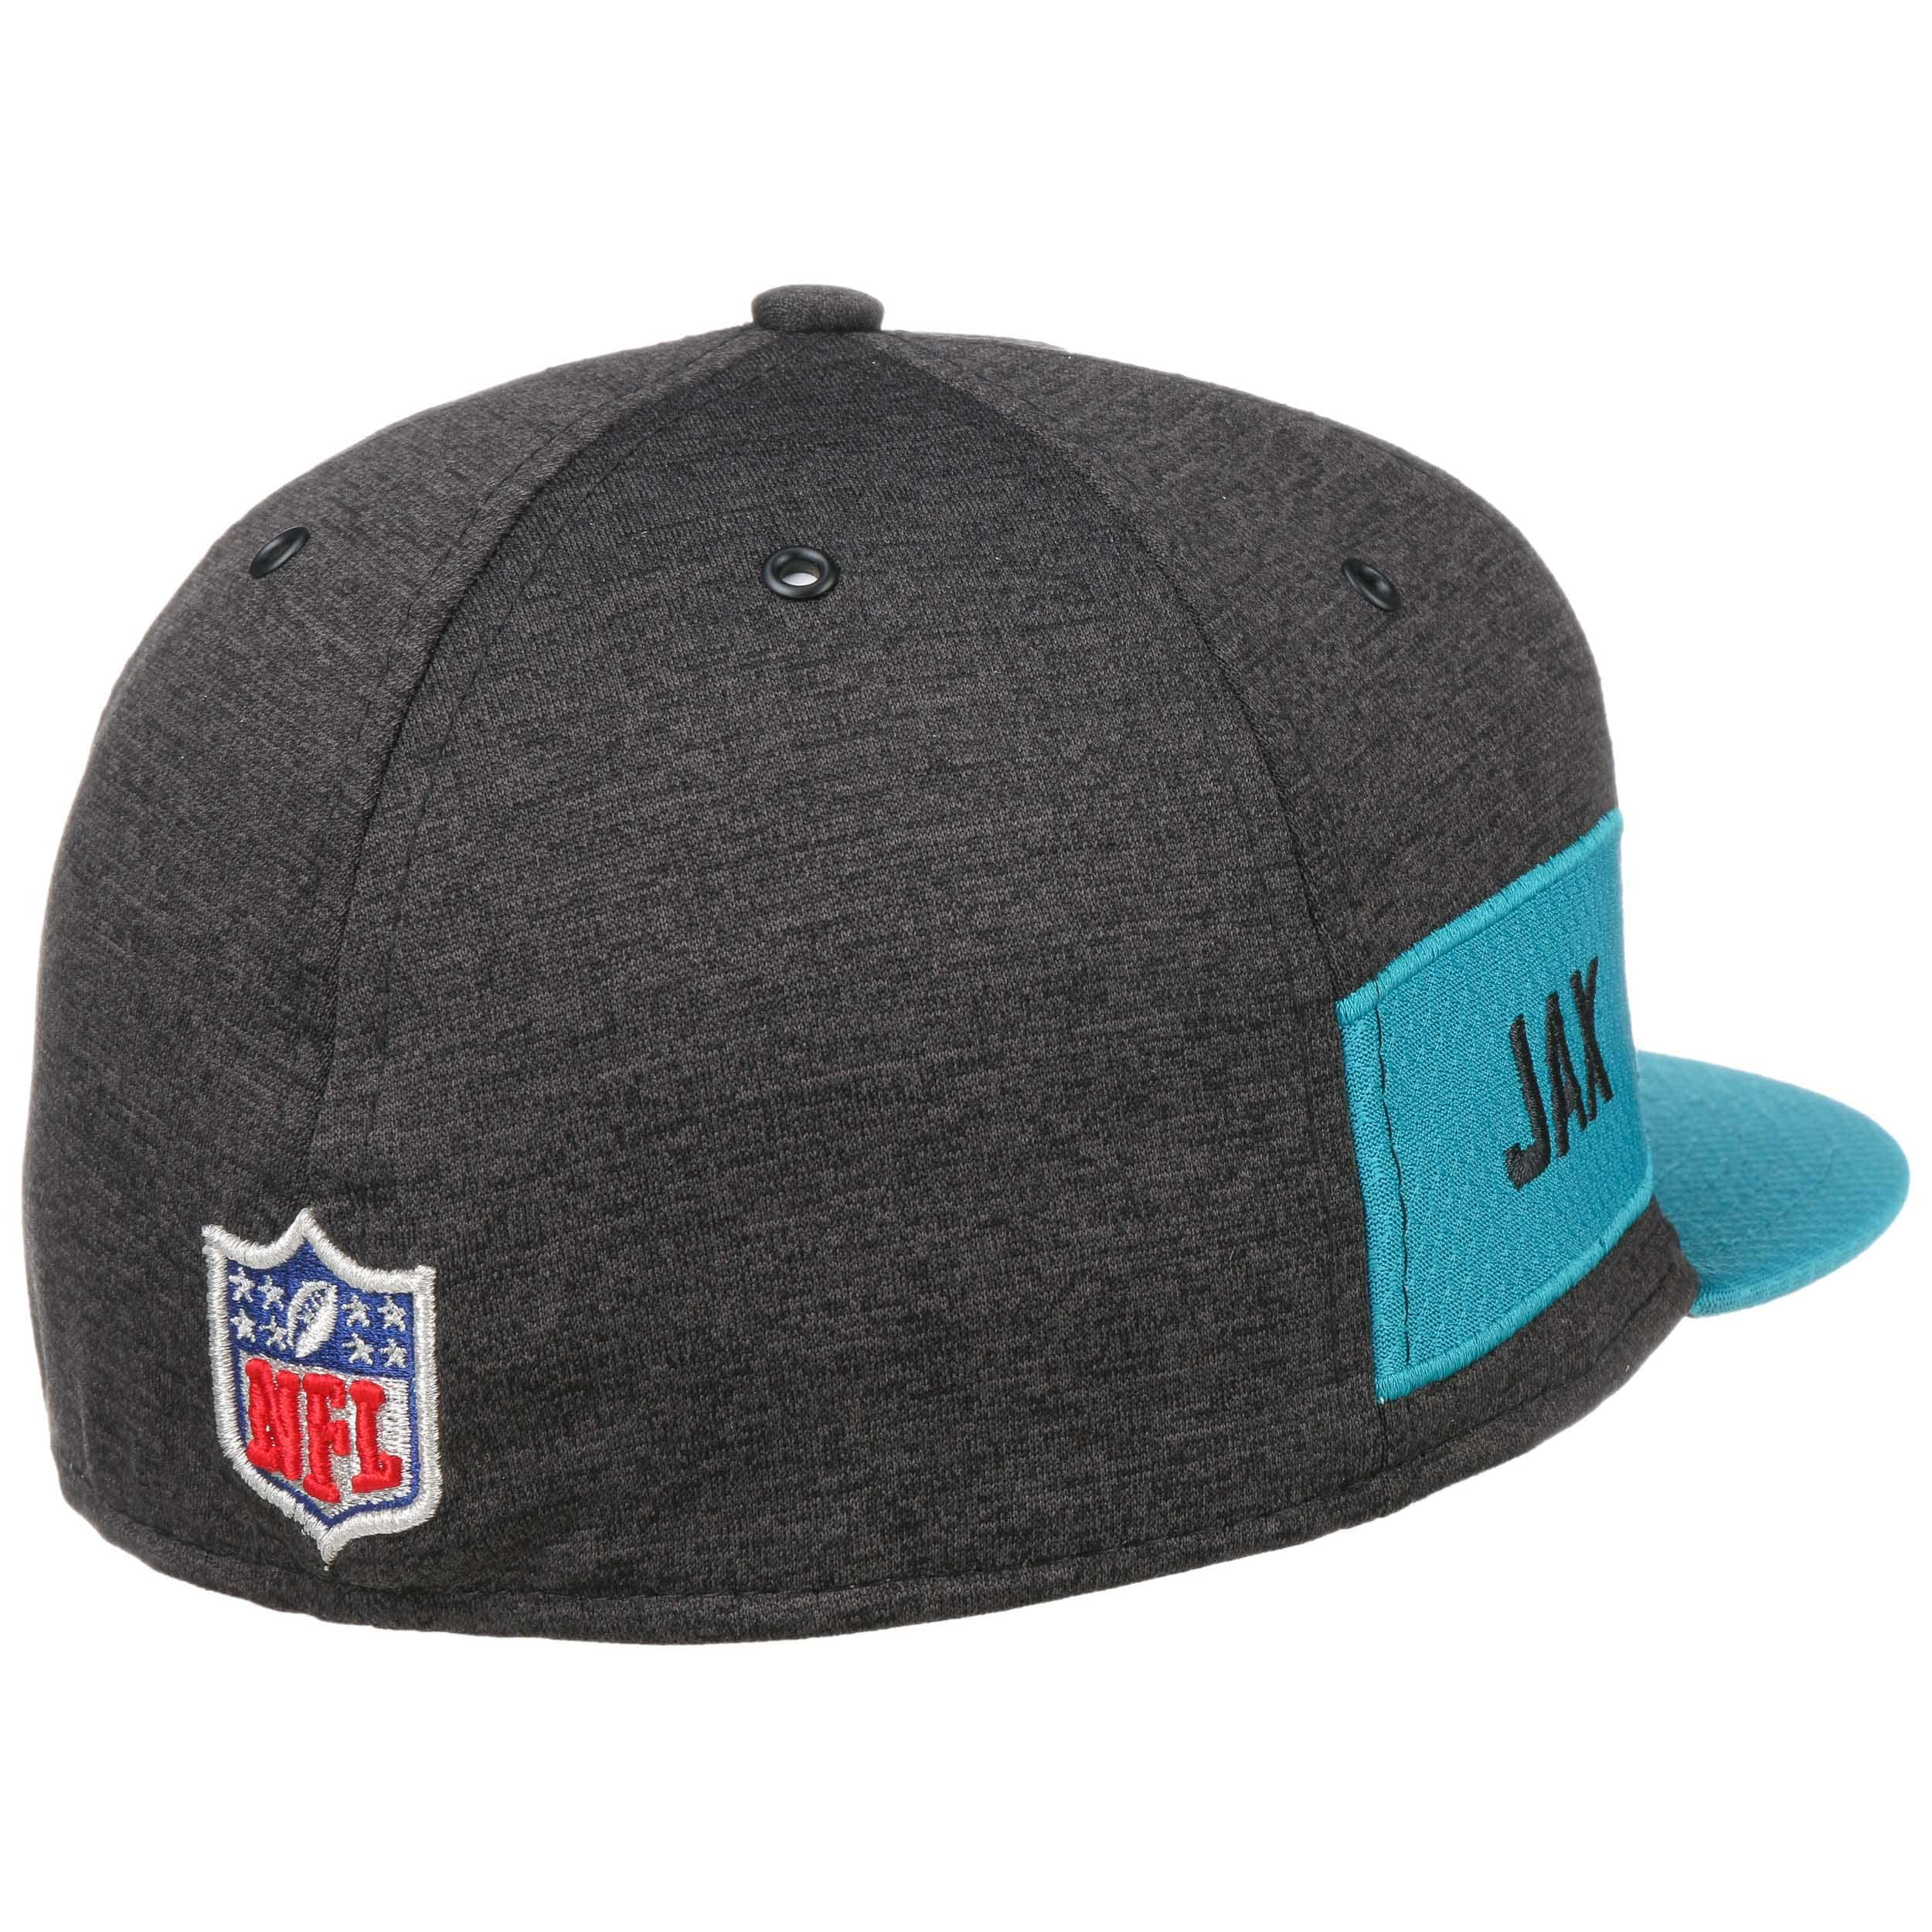 0d8a0cce0e7 ... 59Fifty On-Field 18 Jaguars Cap by New Era - black 3 ...